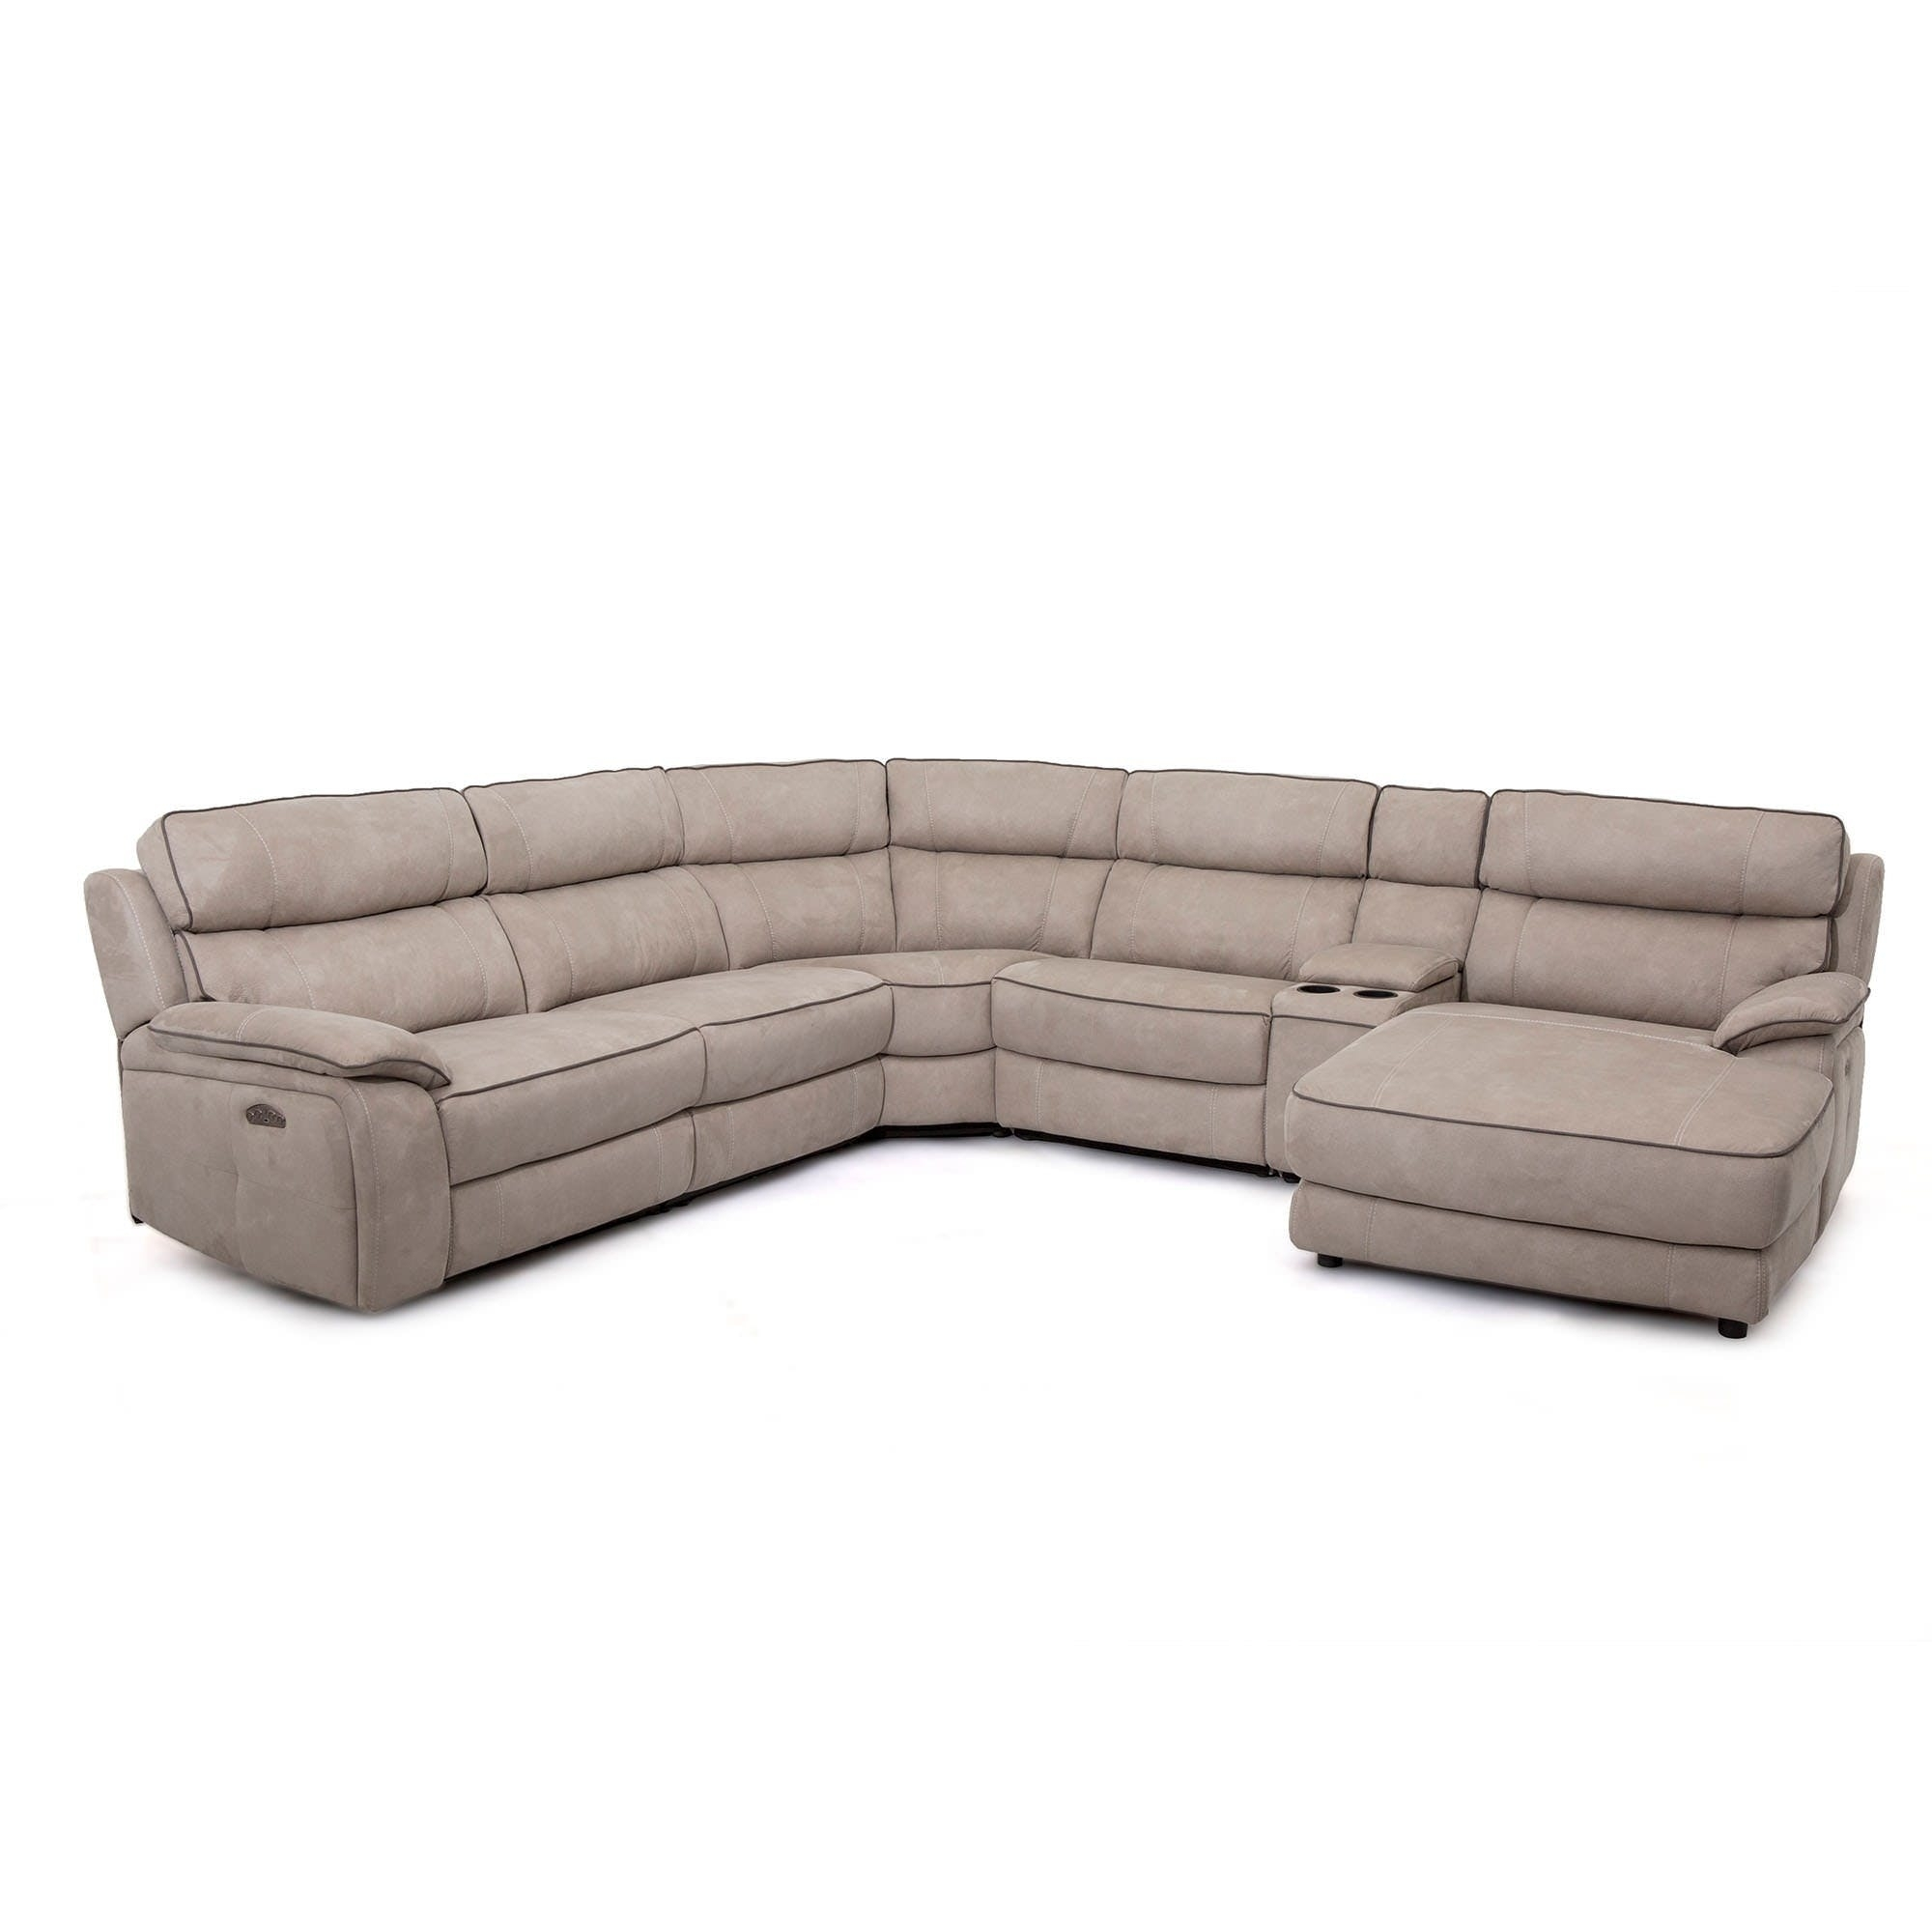 Silver Grey 6 Piece Power Reclining Sectional With Power Headrest With Kristen Silver Grey 6 Piece Power Reclining Sectionals (Image 20 of 25)